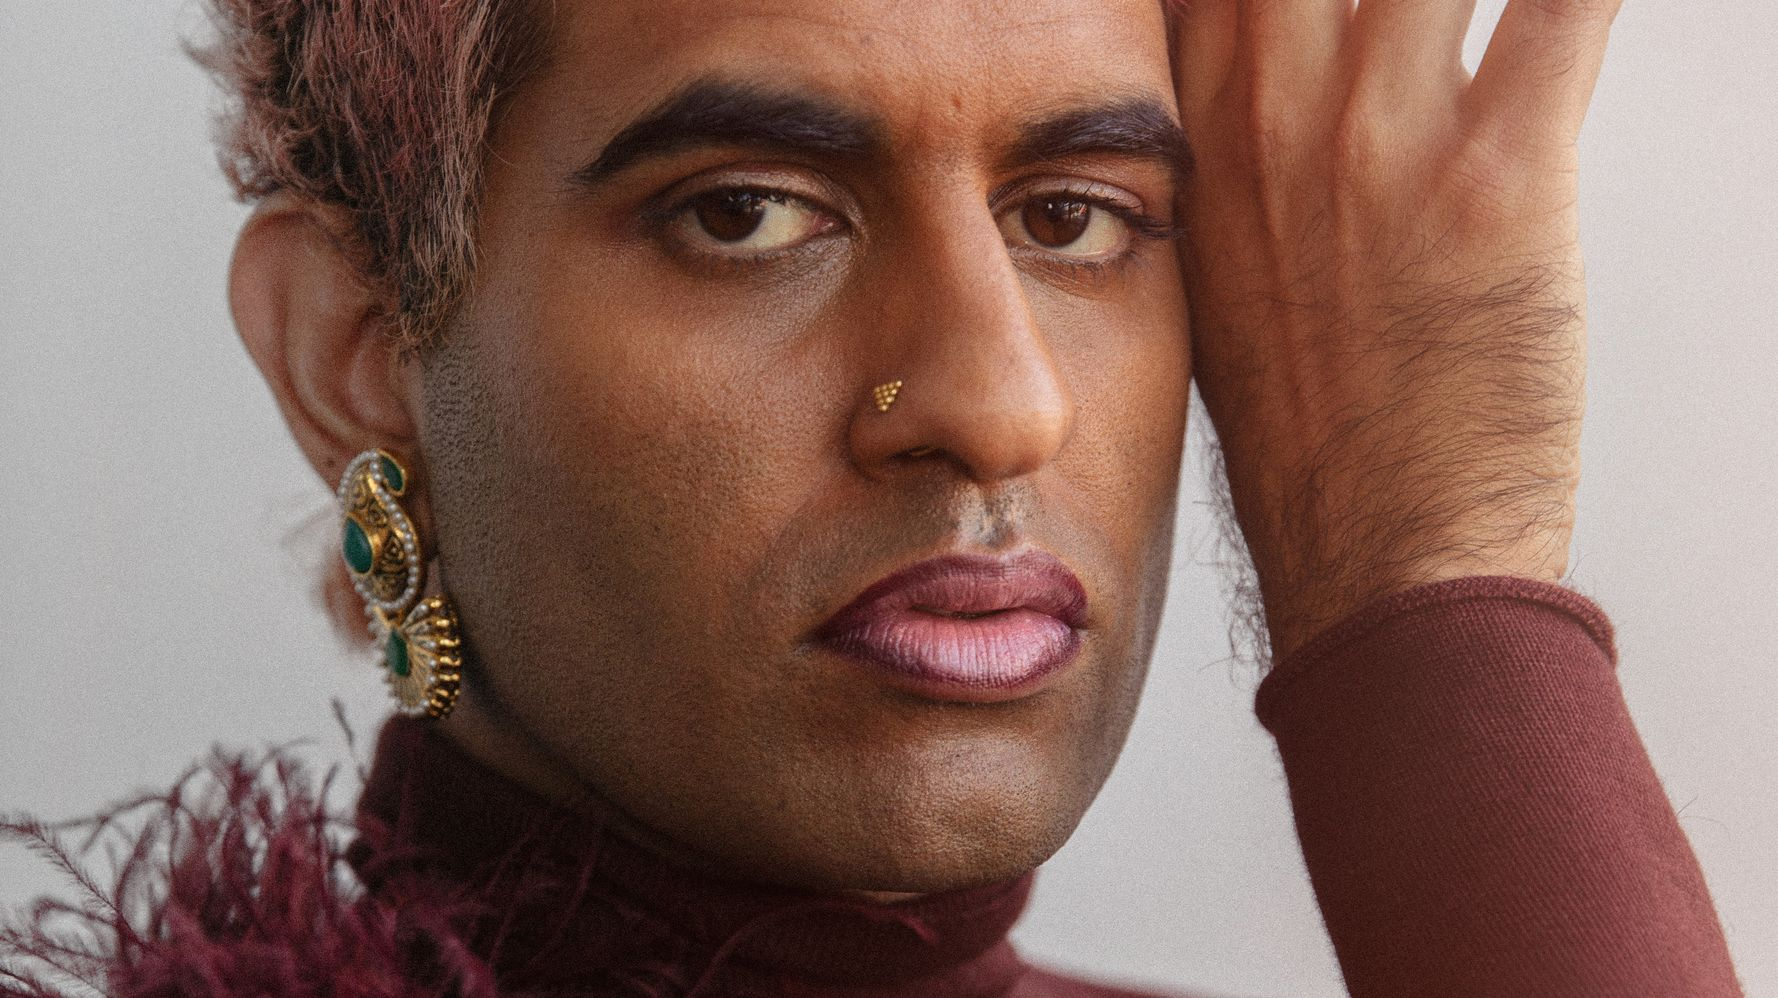 Alok Is Pushing Art And Activism Beyond The Gender Binary